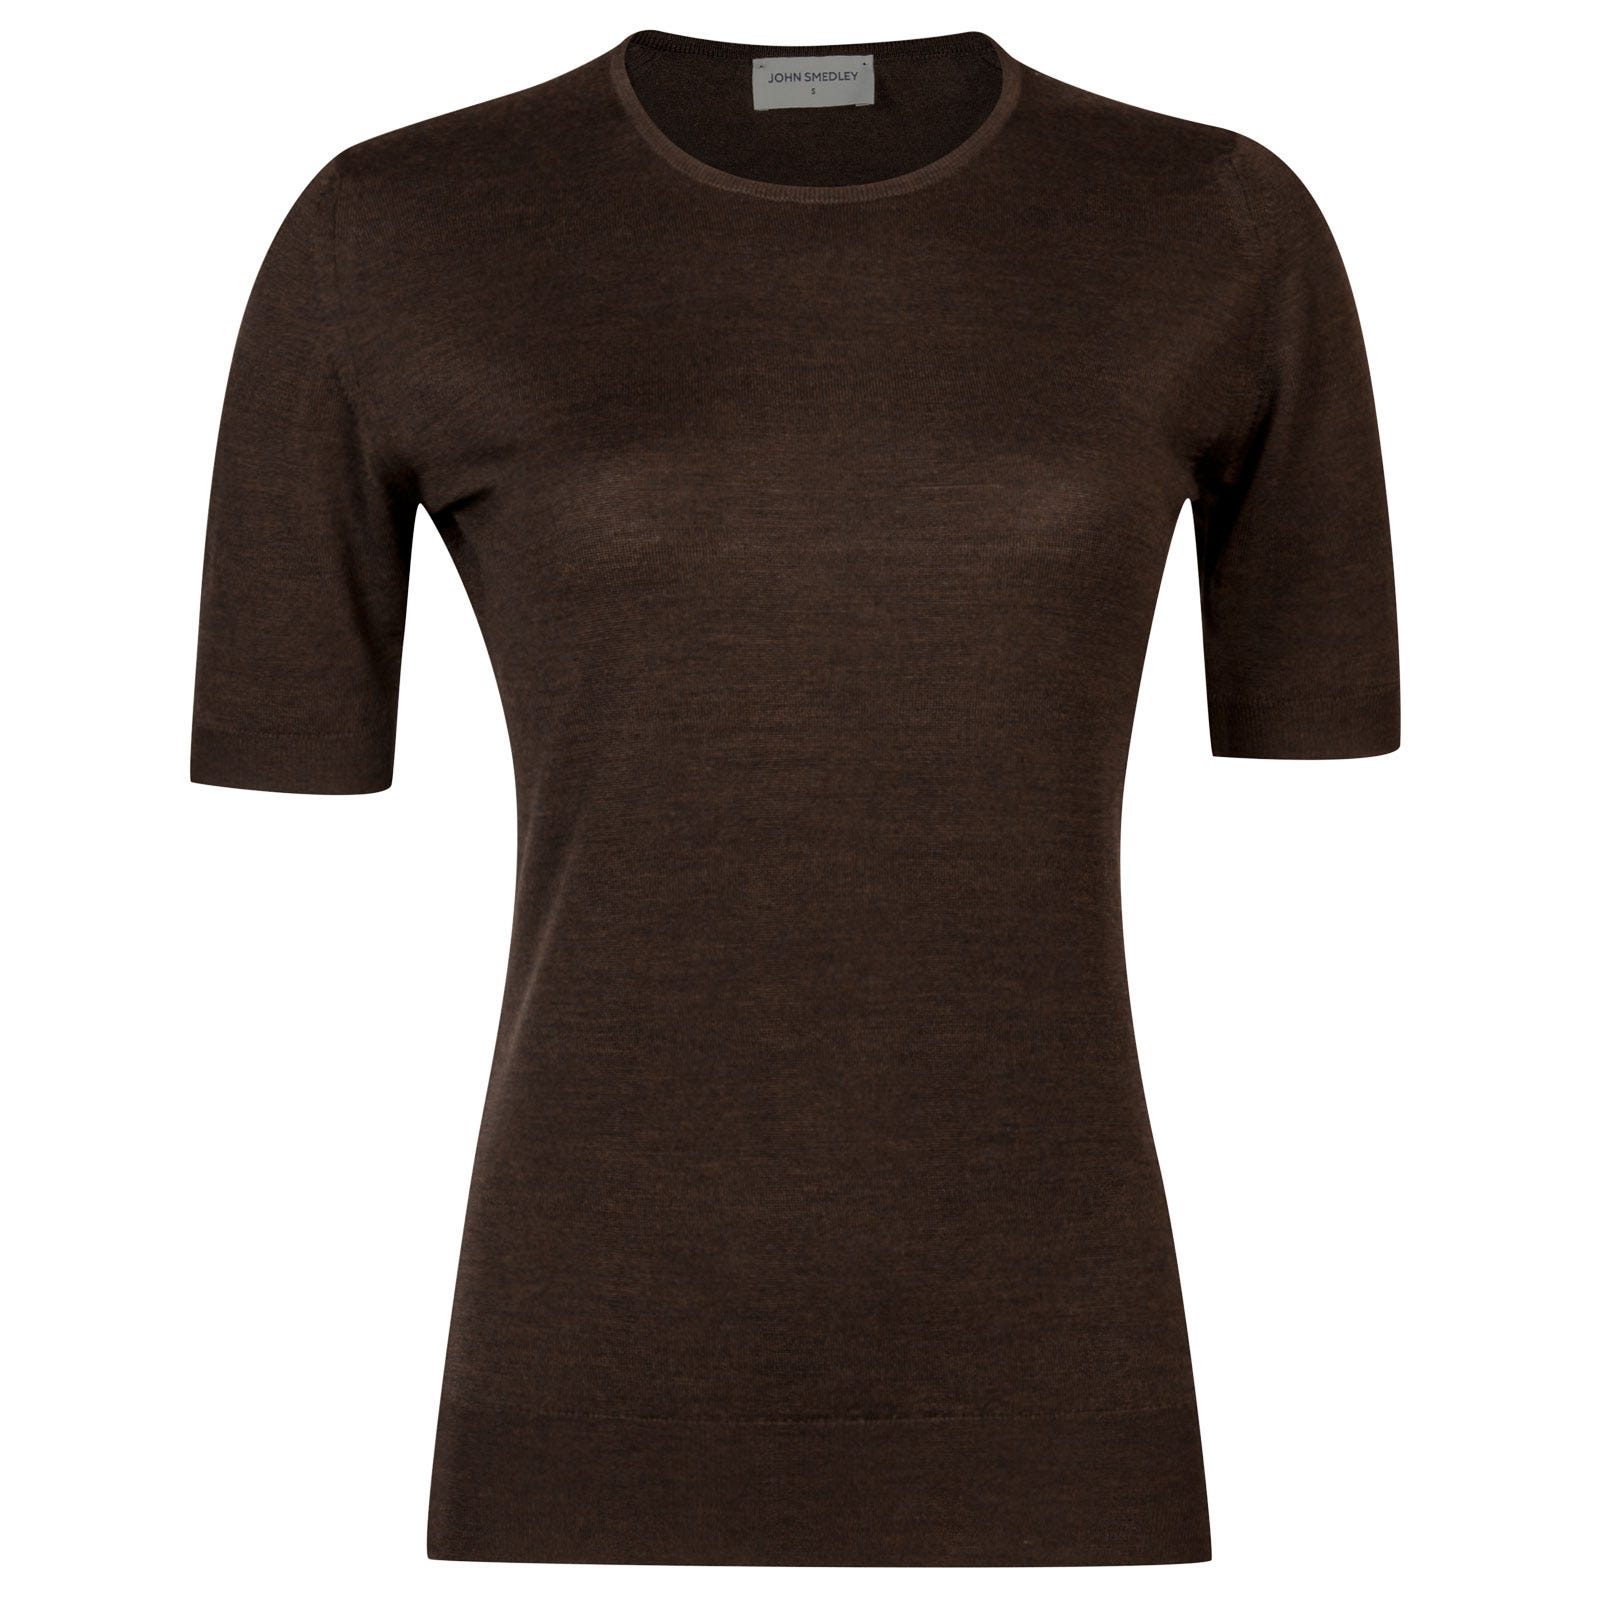 John Smedley rietta Merino Wool Sweater in Chestnut-M